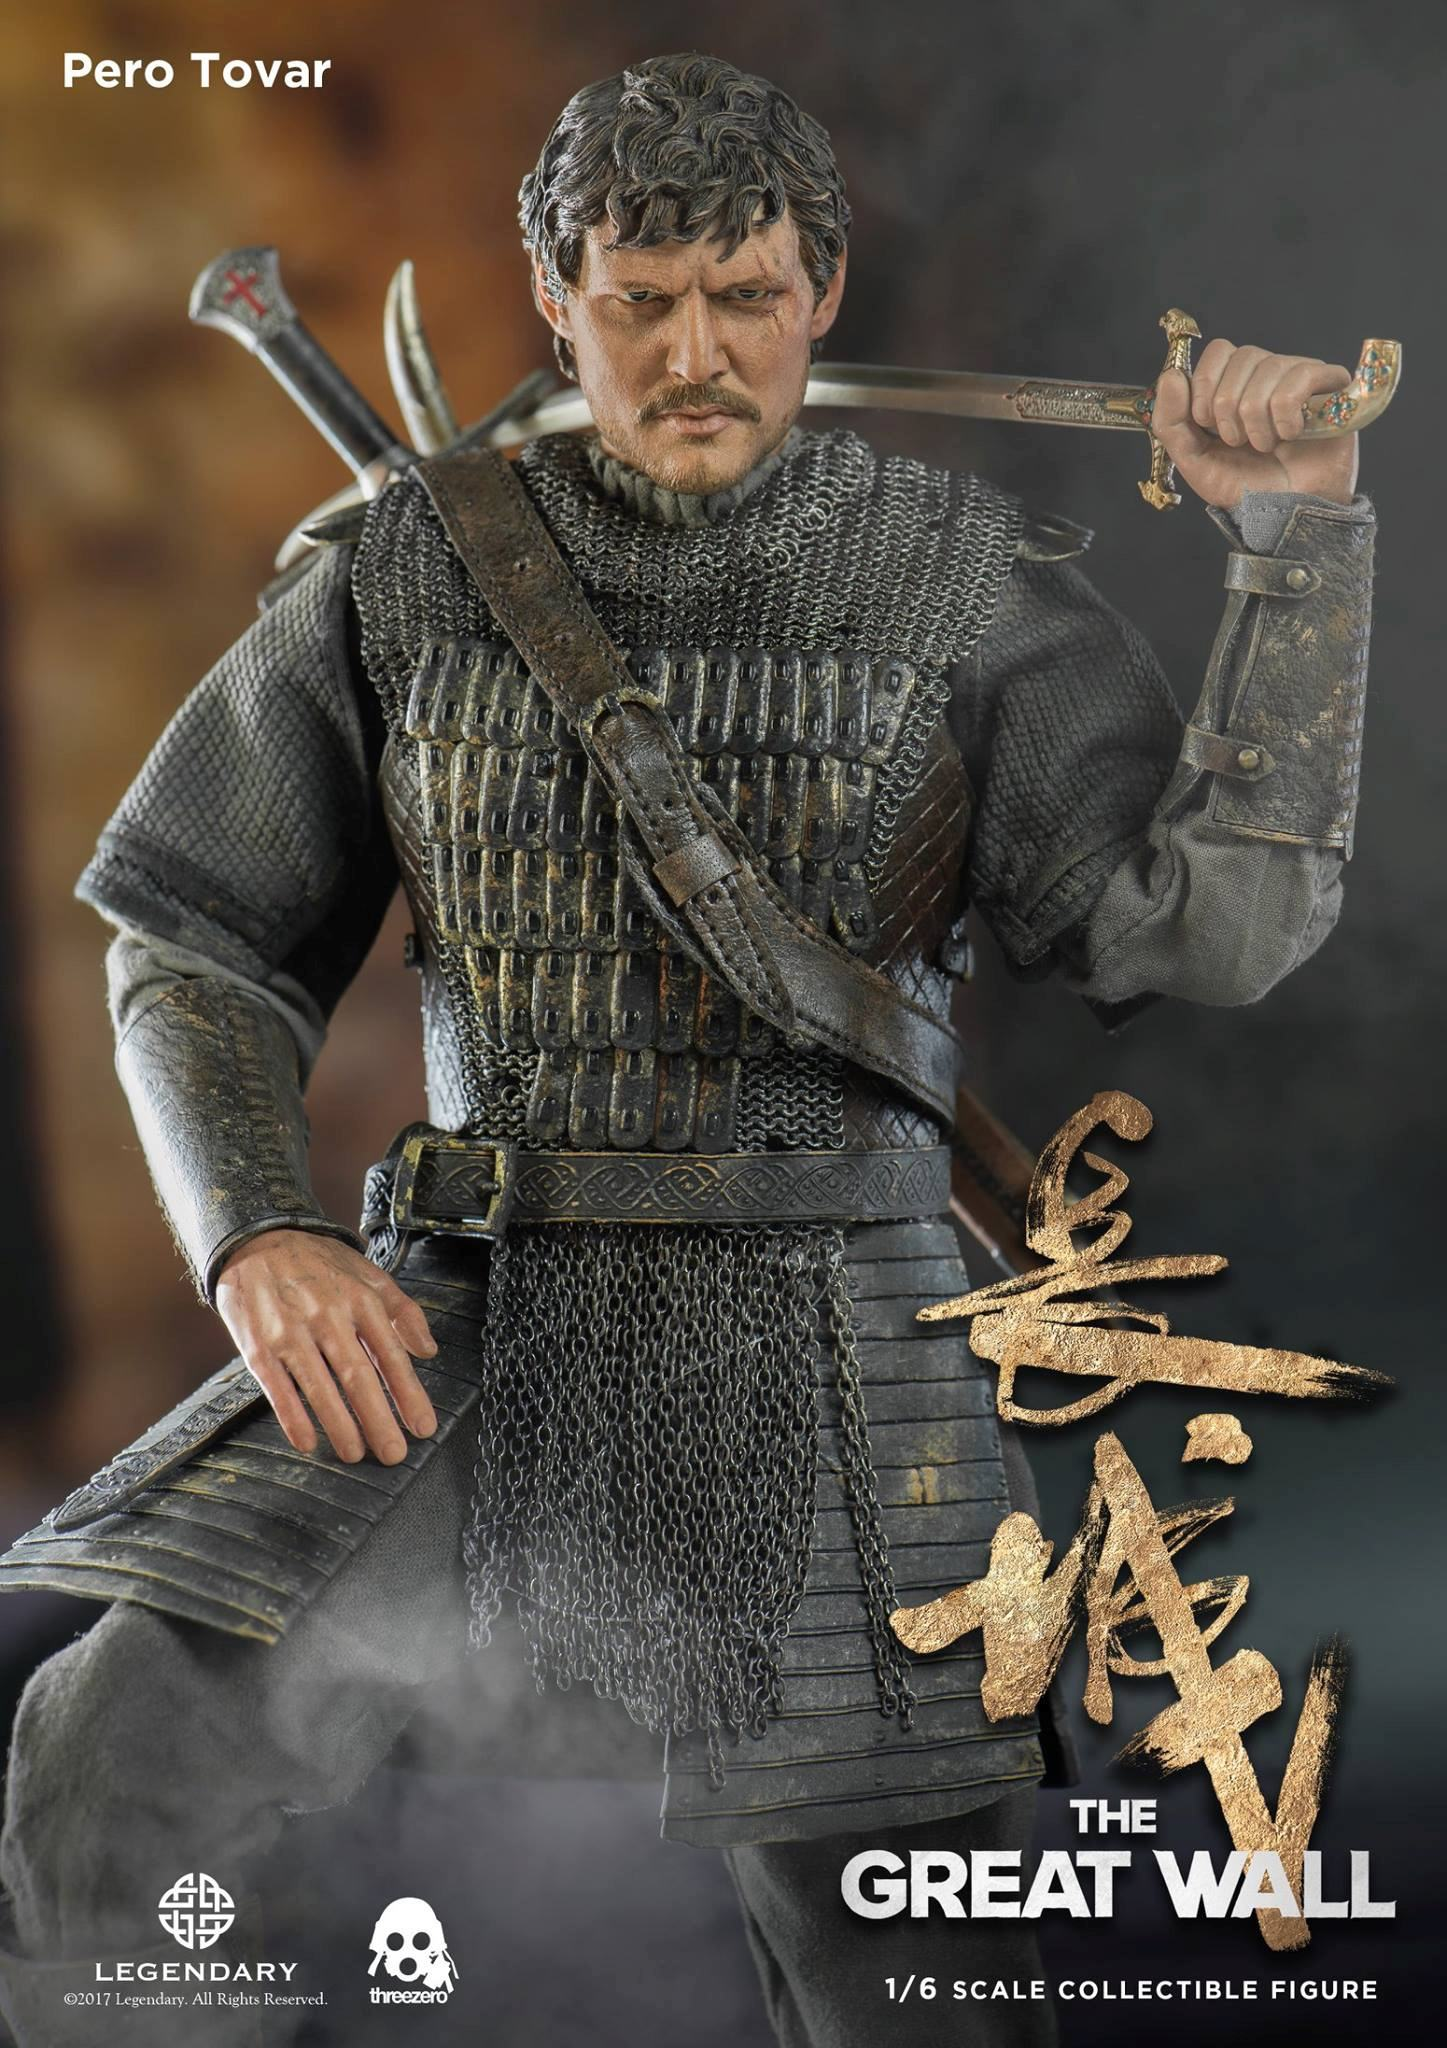 Pero-Tovar-The-Great-Wall-Action-Figure-09